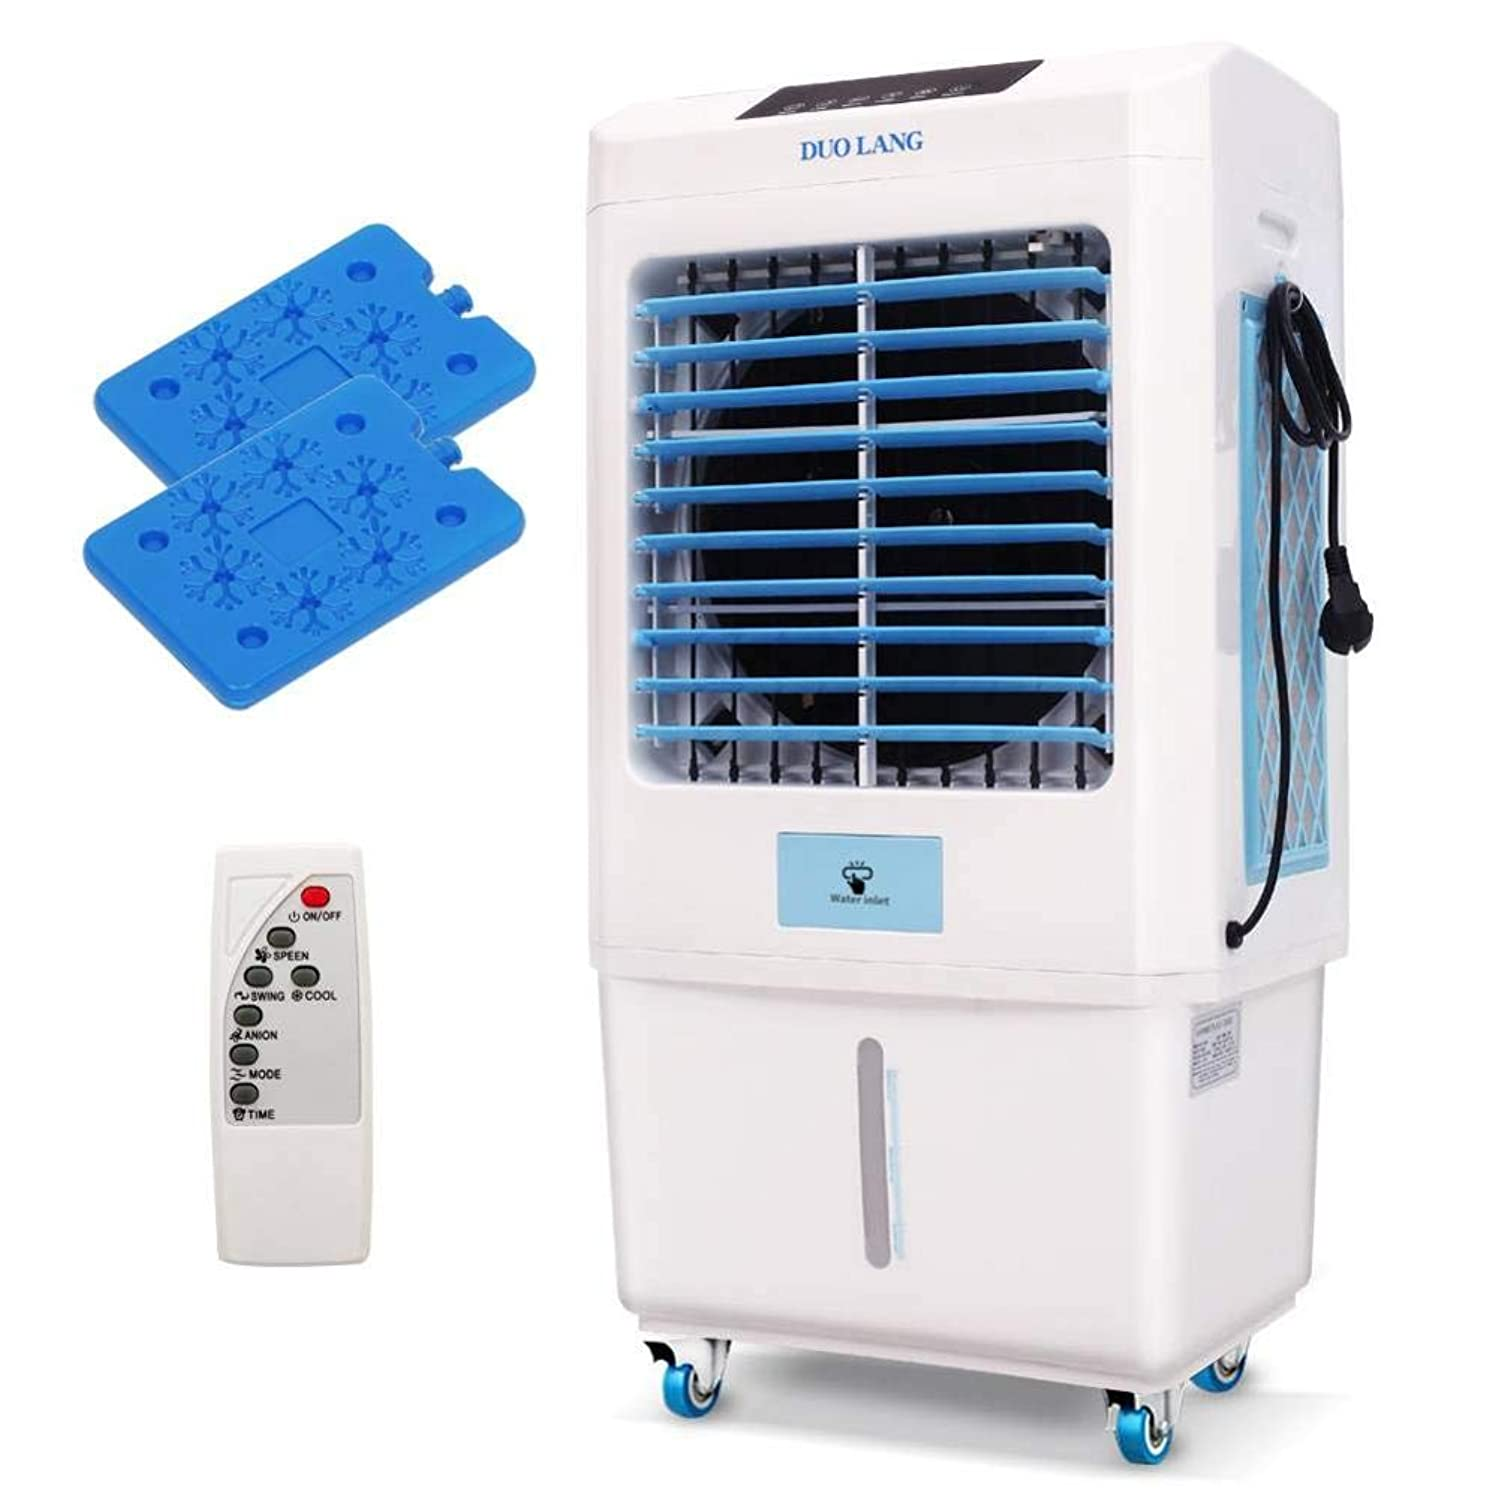 Foerteng-us Air Cooler, 4-in-1Portable Evaporative Air Cooler with Fan,Humidifier and Air Purifier, Remote Control and 3 Speeds Air Conditioner for Indoor Outdoor